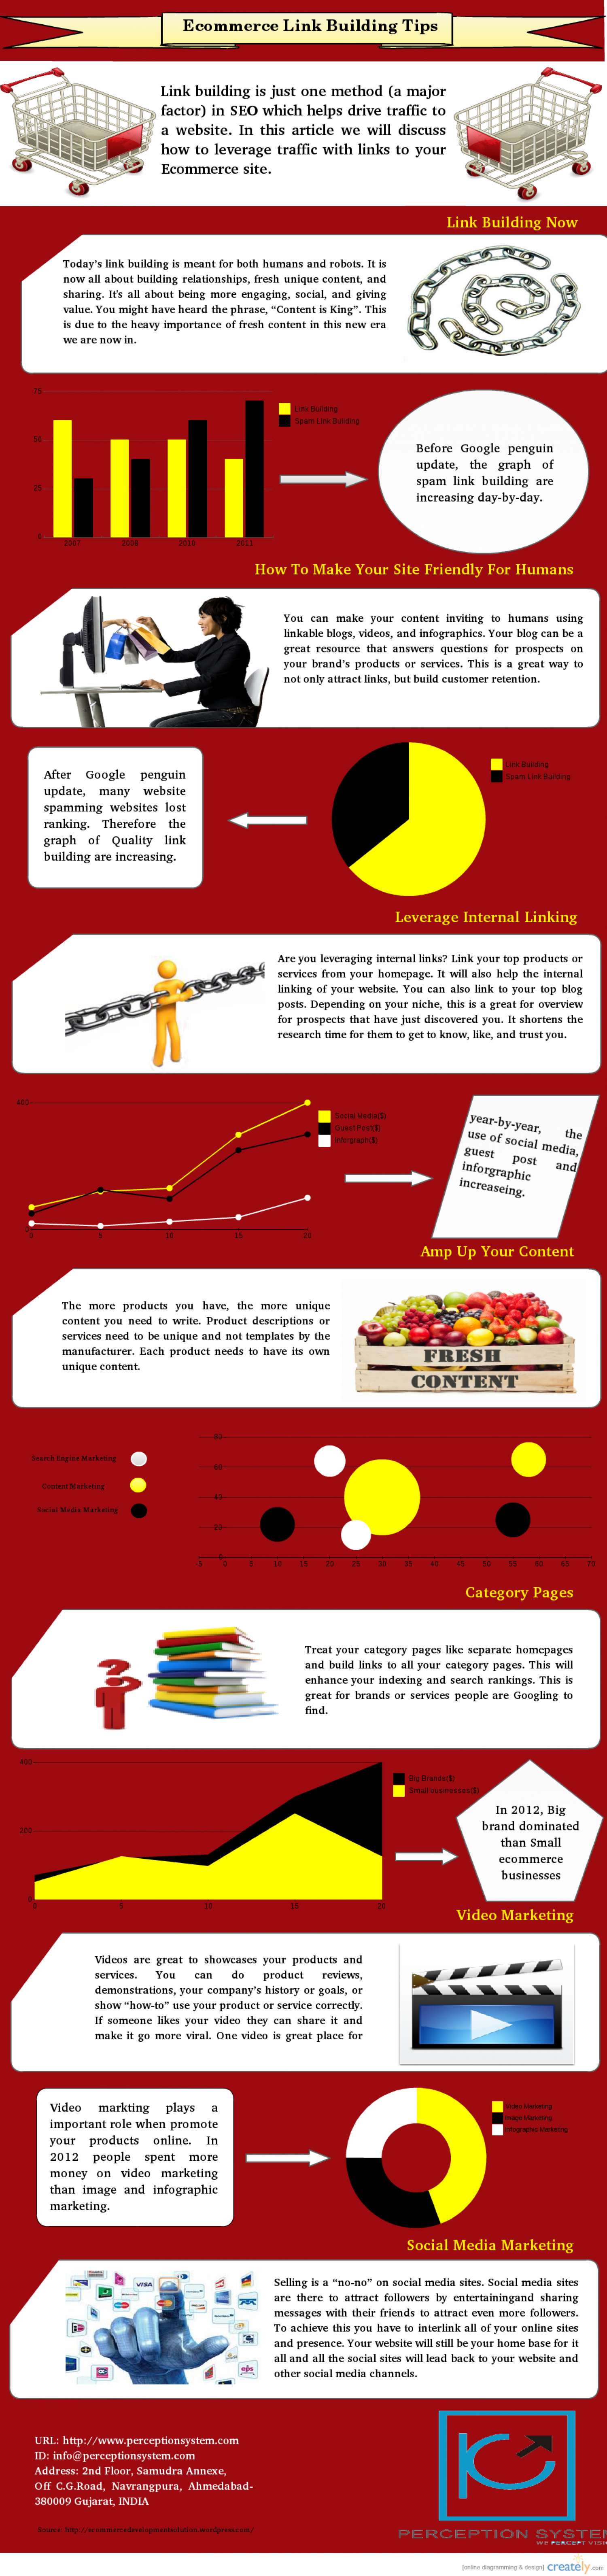 Ecommerce Link building Tips 2013 Infographic